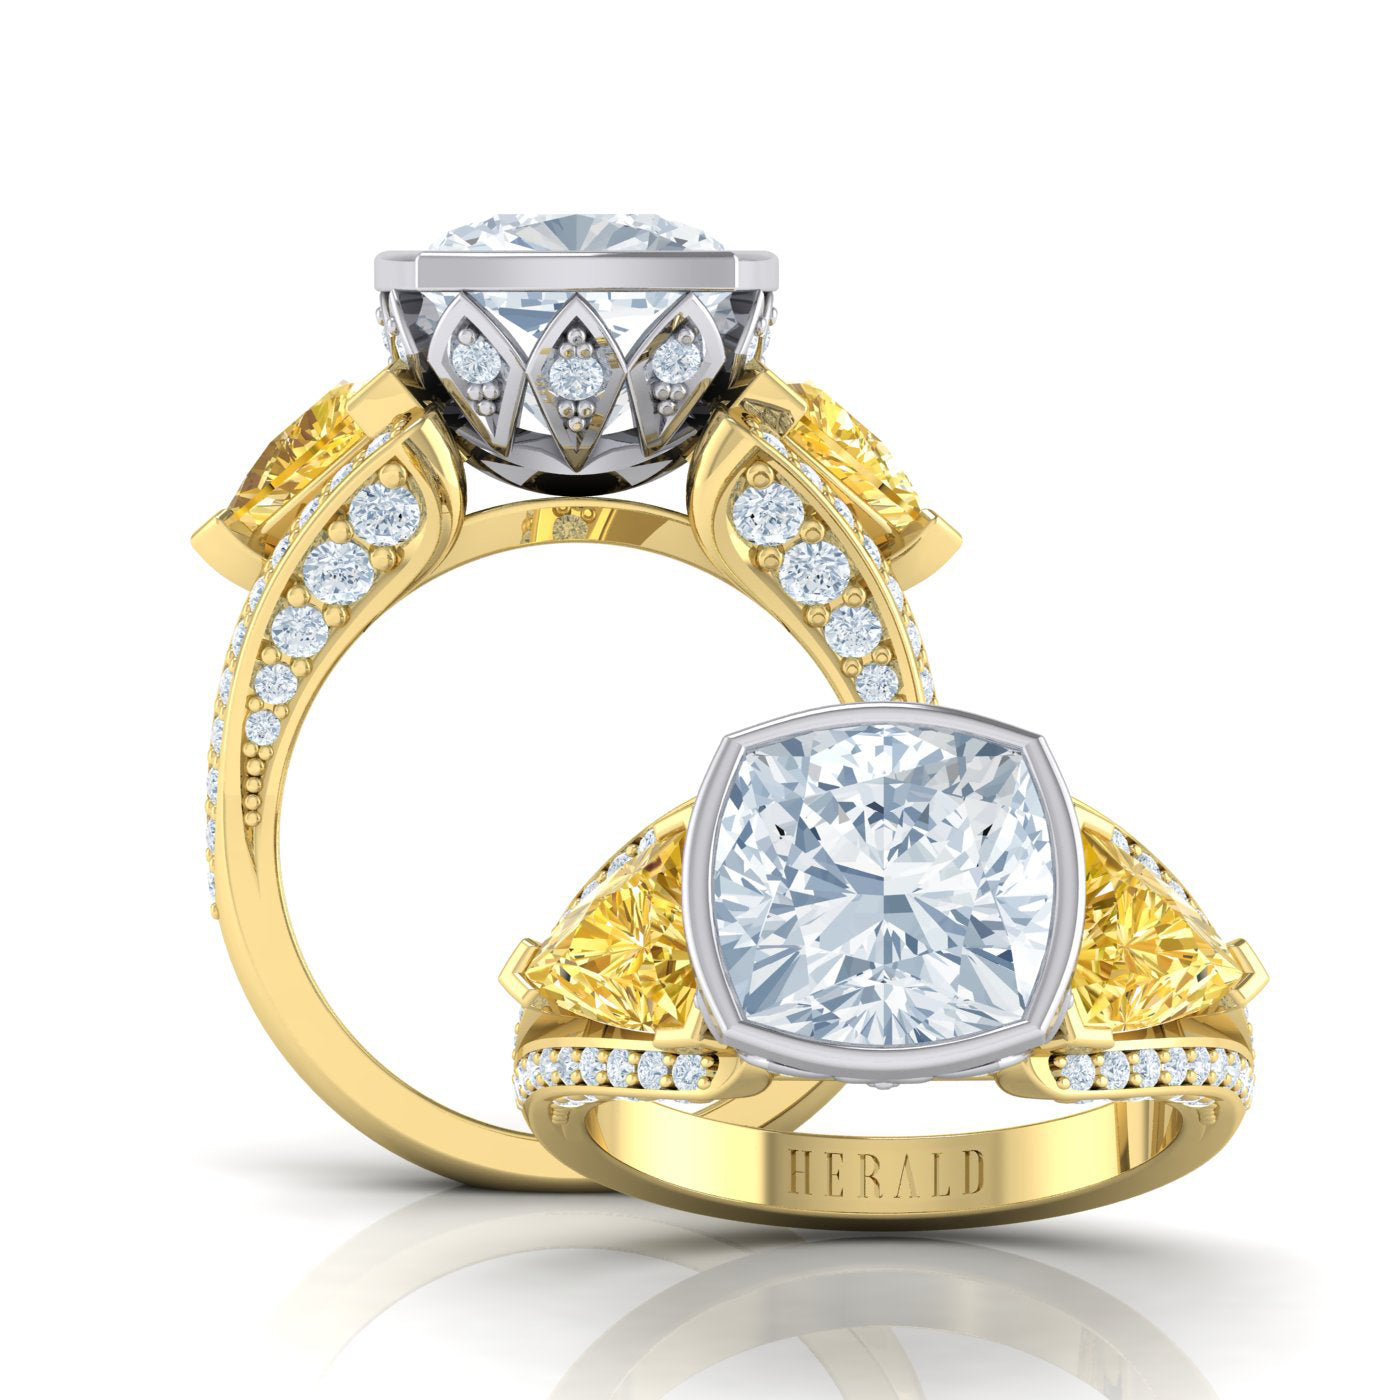 Cushion diamond and yellow diamond dress ring by Alice Herald